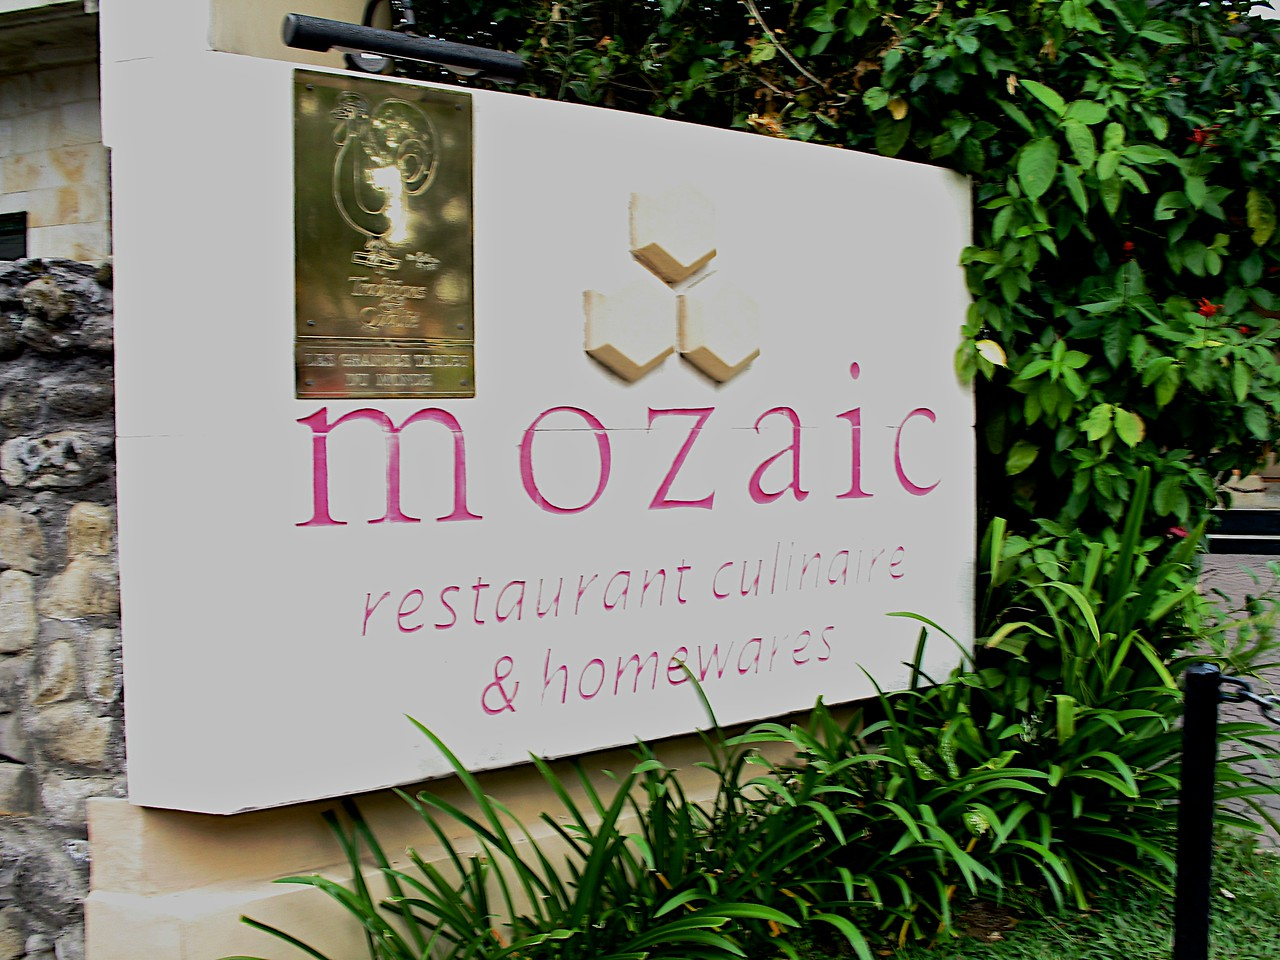 Mozaic is a top rated restaurant that has high acclaim throughout the world.